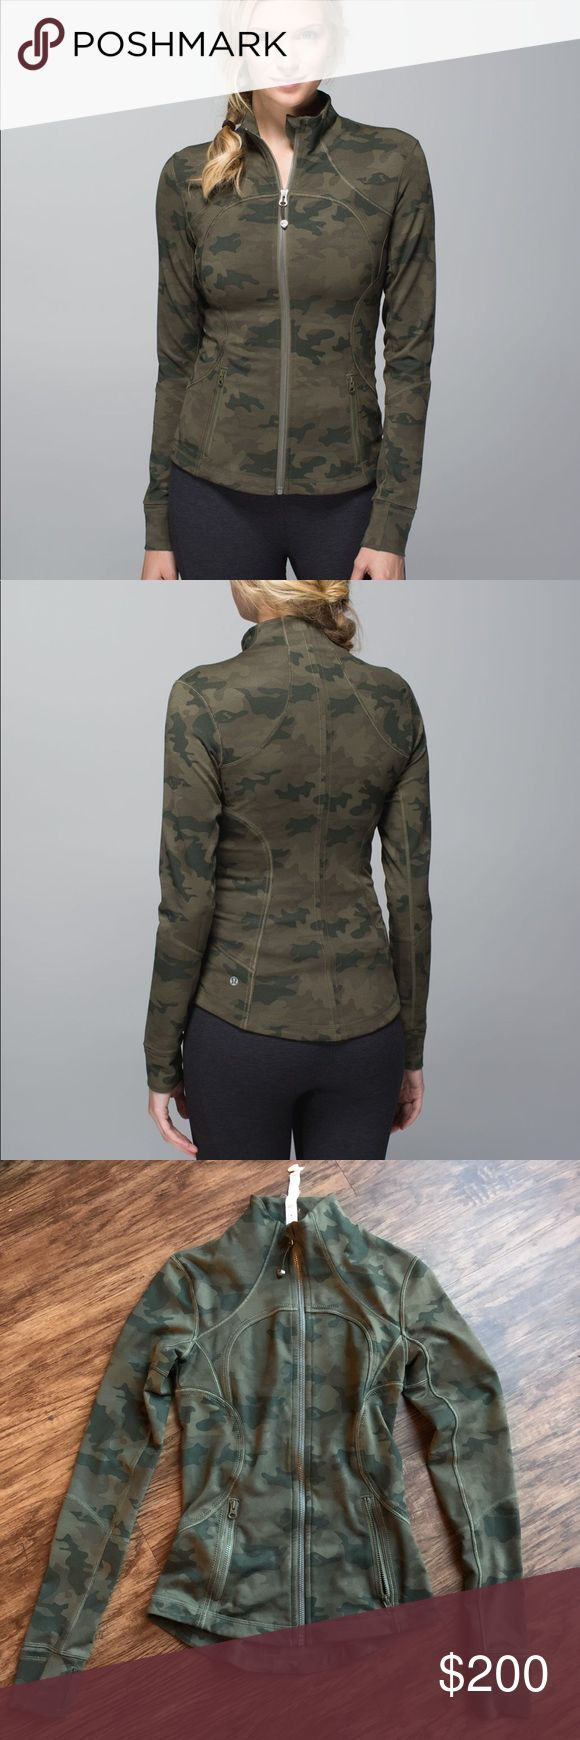 Lululemon savasana forme jacket Green camo, luxtreme. No flaws whatsoever, like new! Size 2 but could fit a 4 due to tooonnss of stretch. Super rare. Before you make comments about the price please google this jacket to see what this is going for on eBay. ($200-$300). 20% off via p.ay p.al. lululemon athletica Jackets & Coats